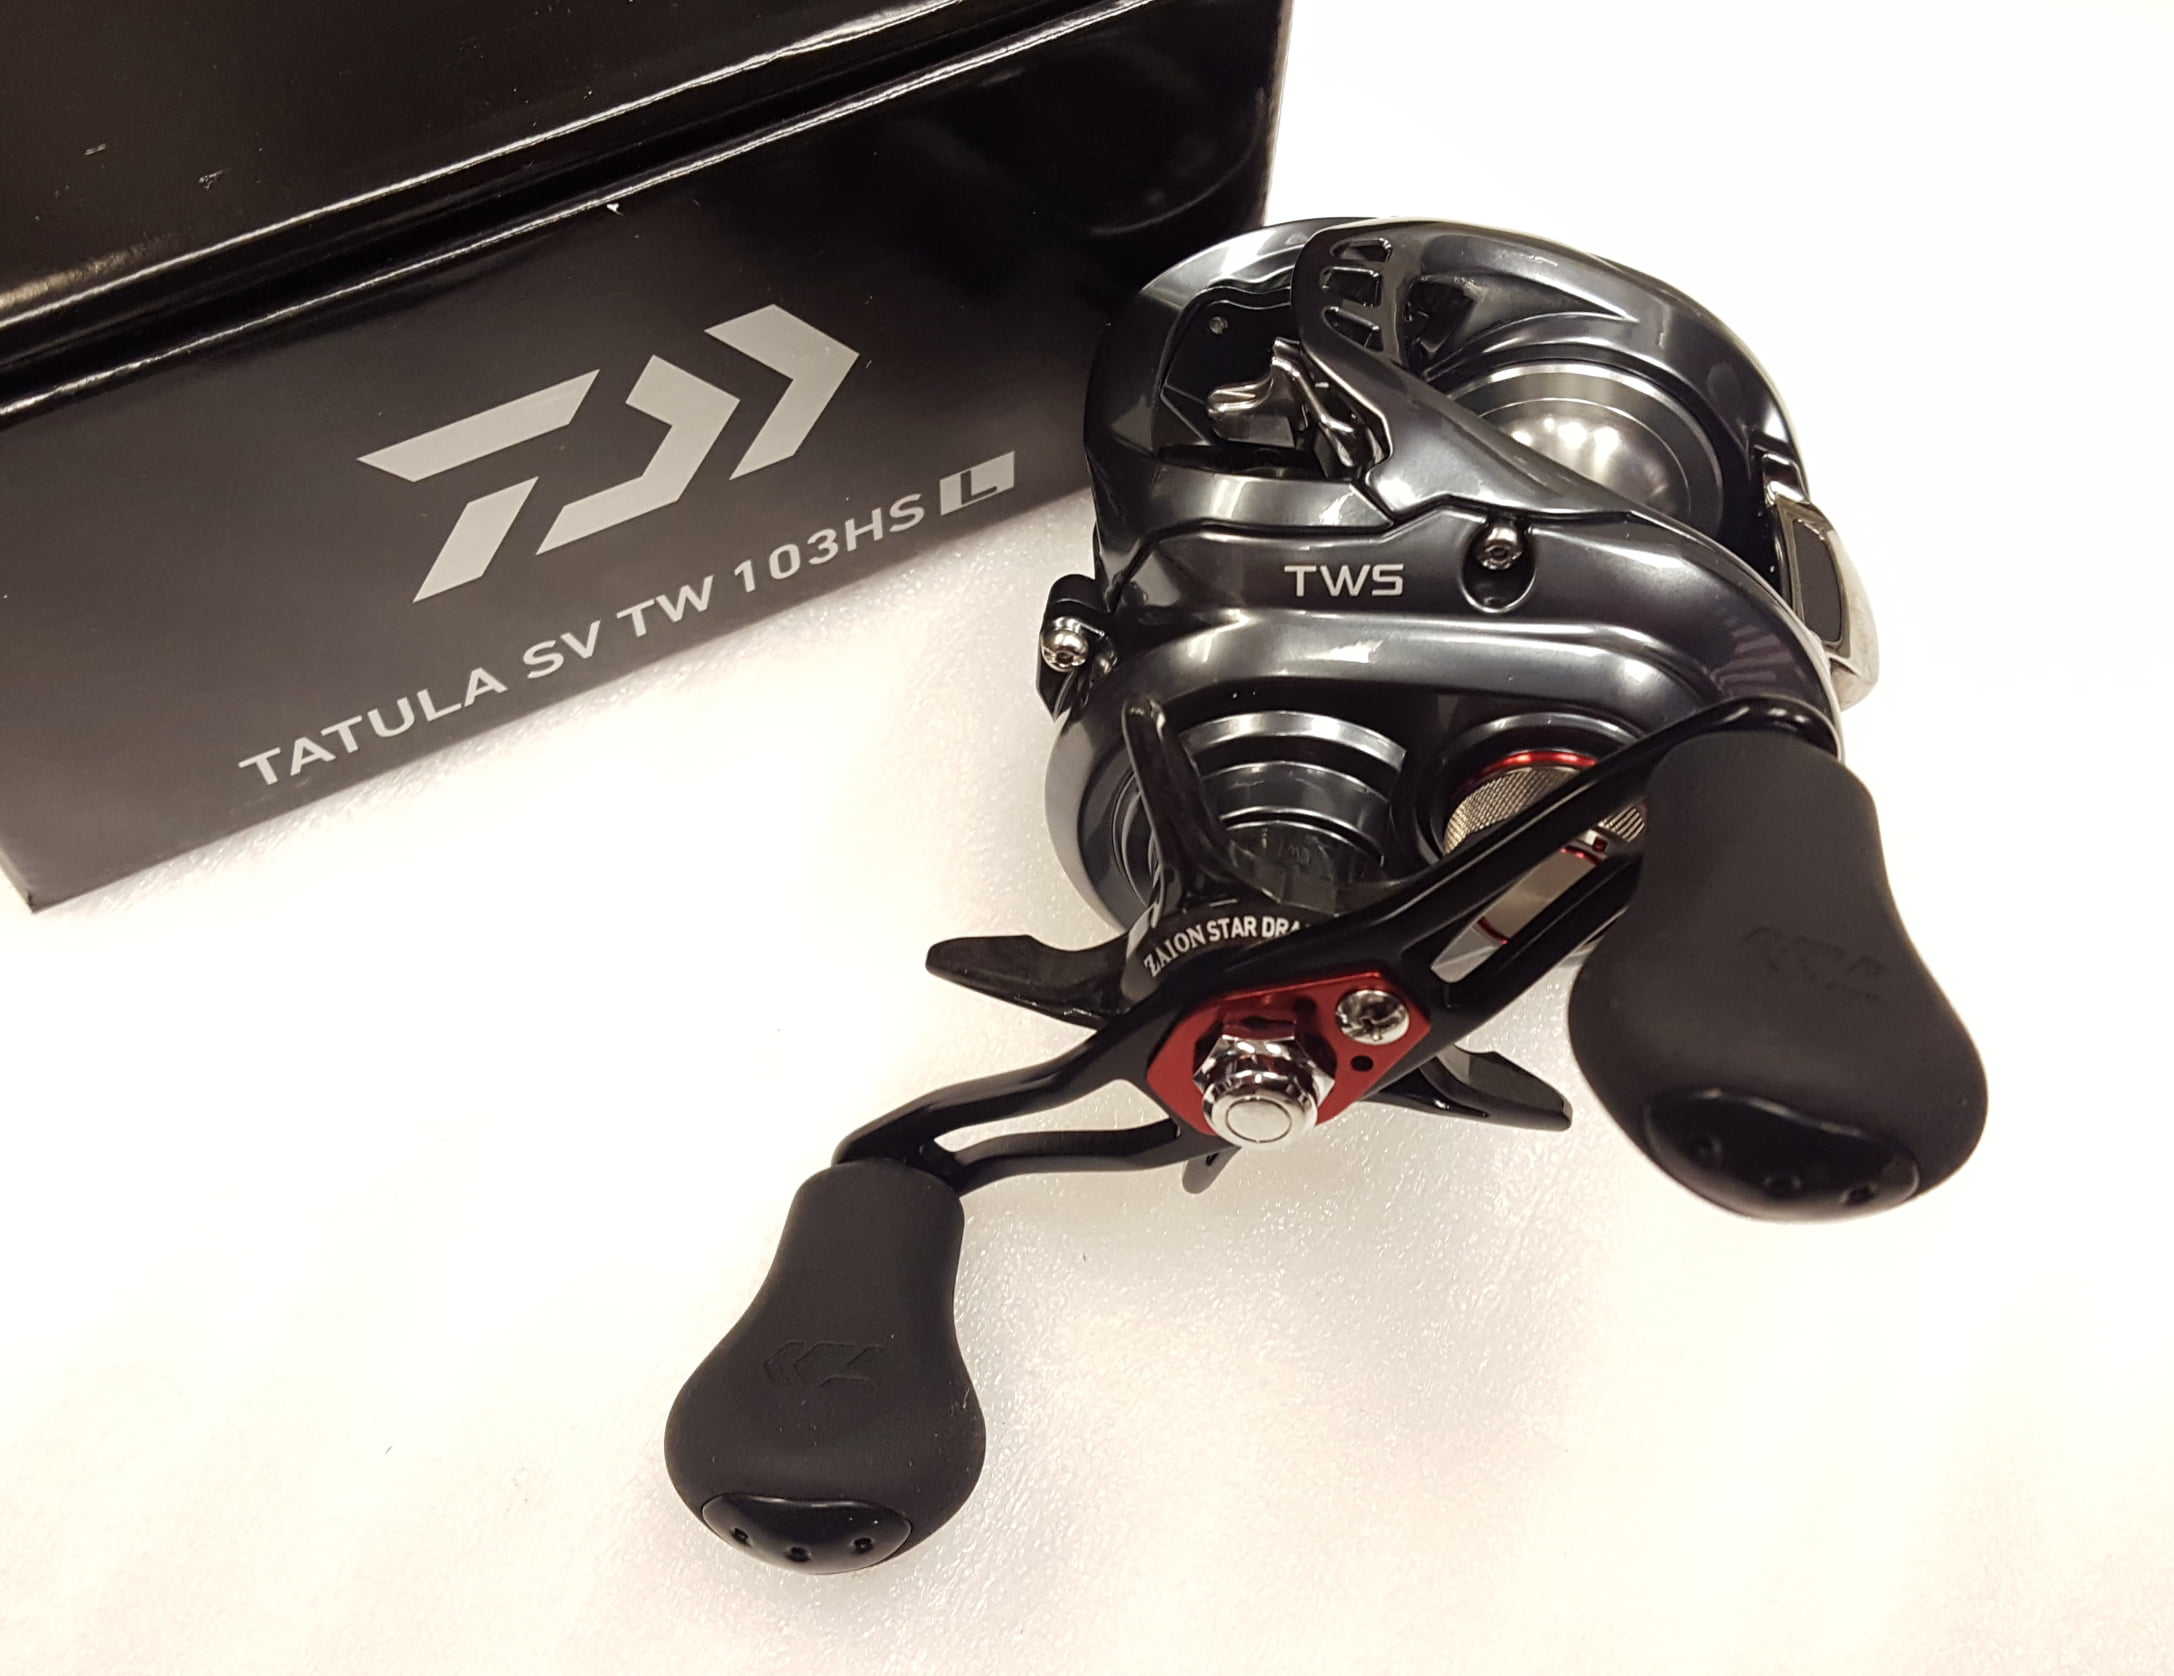 Click here to buy Daiwa Tatula SV TW 103HSL 7.3:1 Baitcast Left Hand Fishing Reel TASV103HSL by Daiwa.